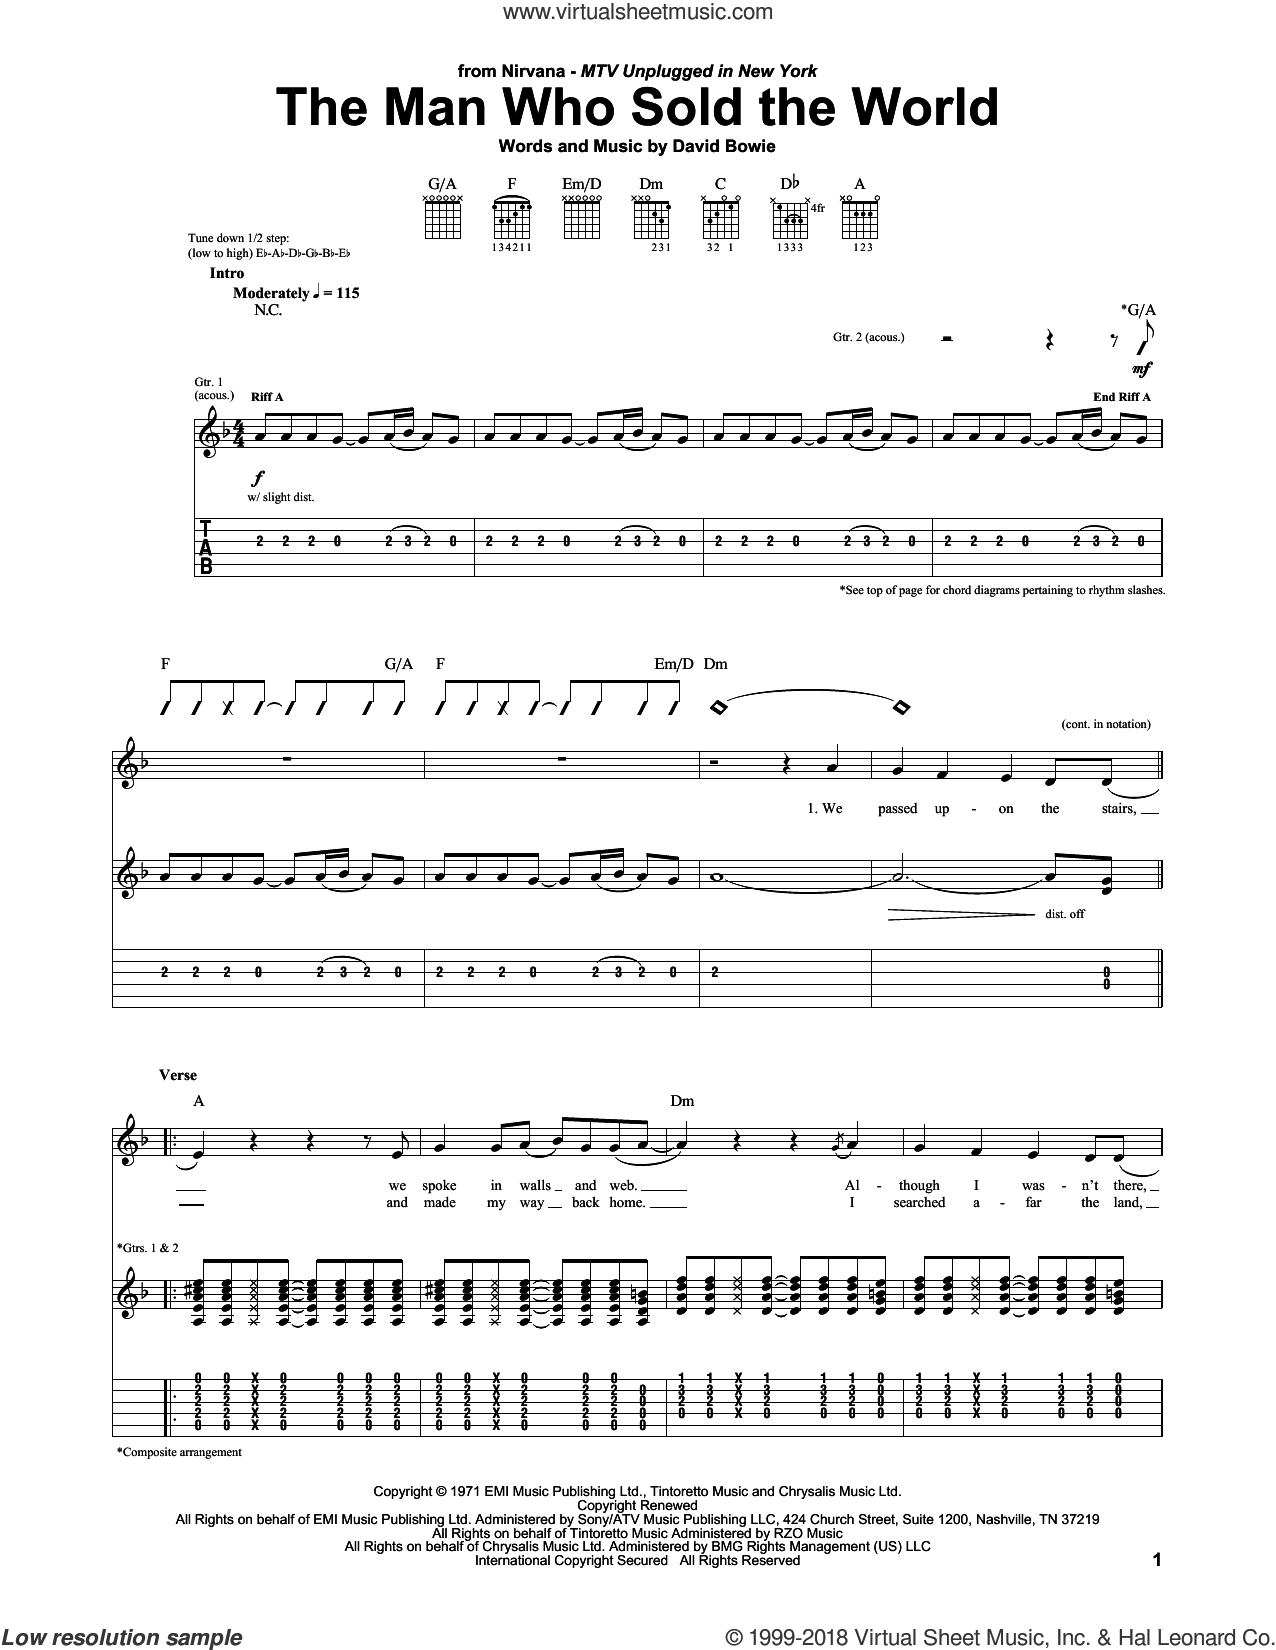 The Man Who Sold The World sheet music for guitar (tablature) by Nirvana and David Bowie, intermediate skill level